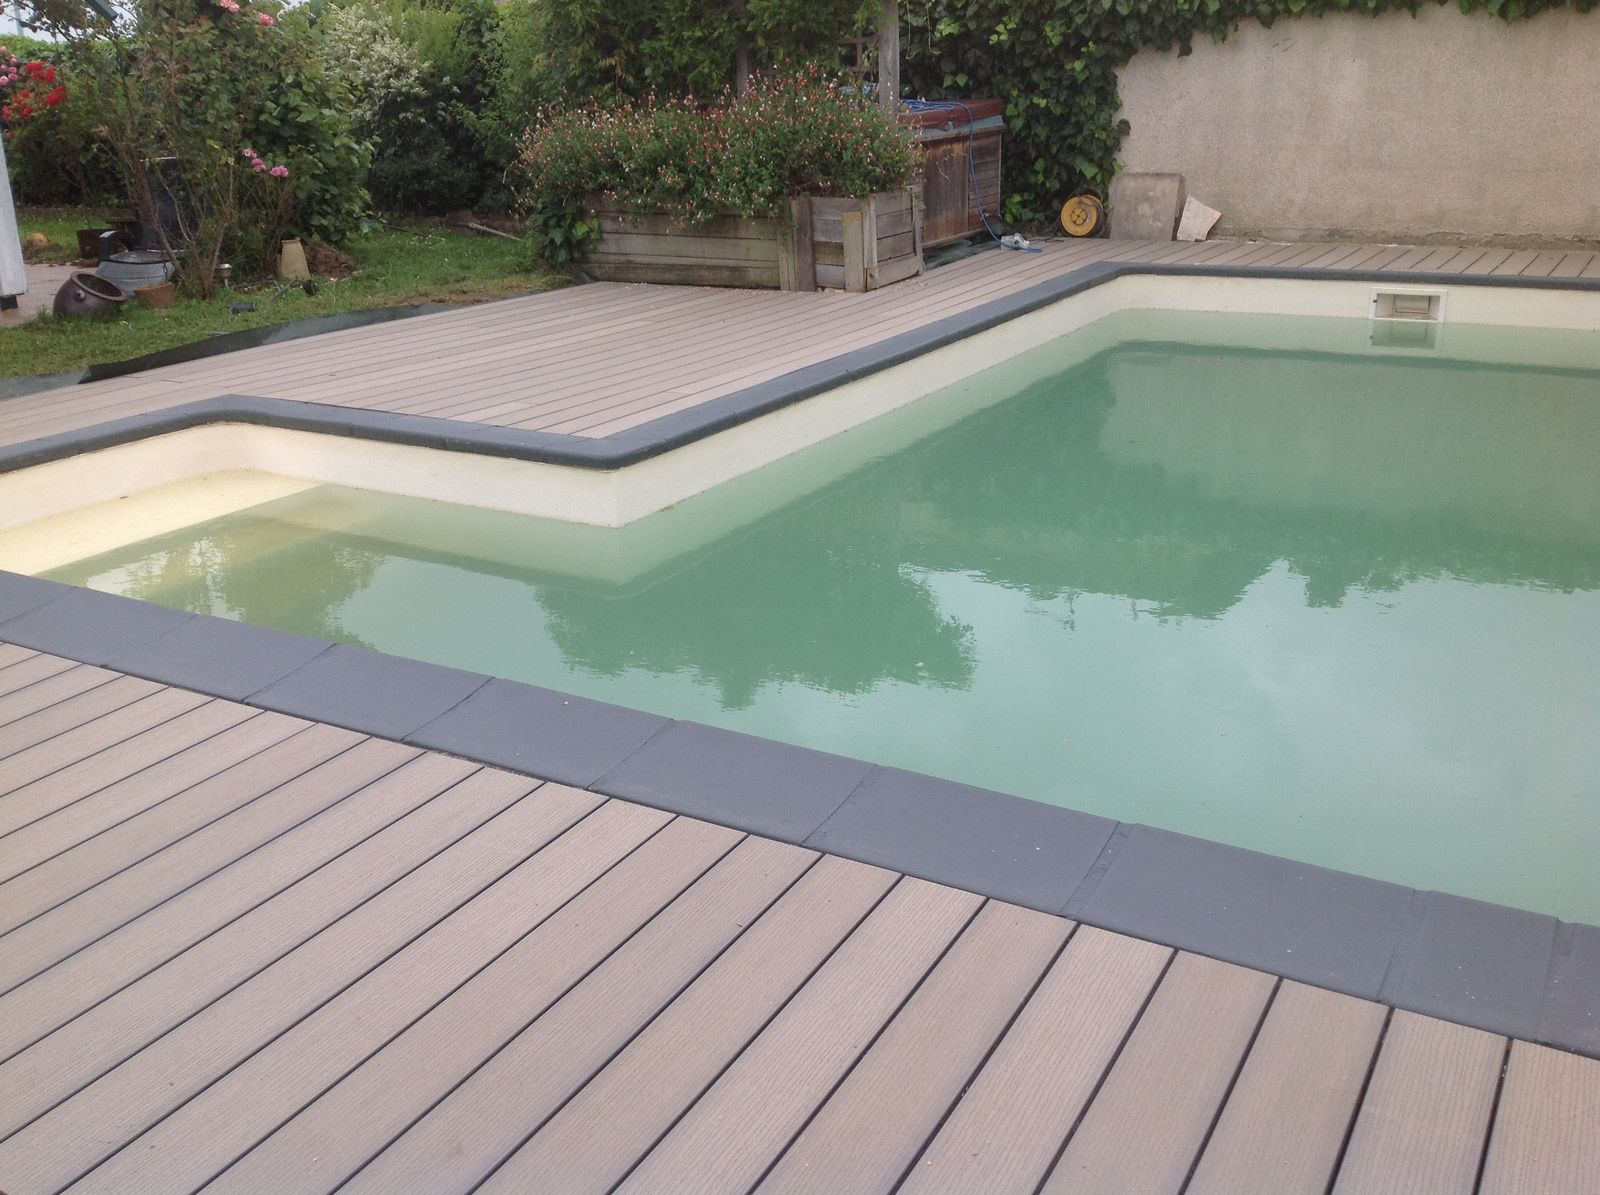 Terrasses composites quelques creations 2016 le blog for Terrasse piscine composite